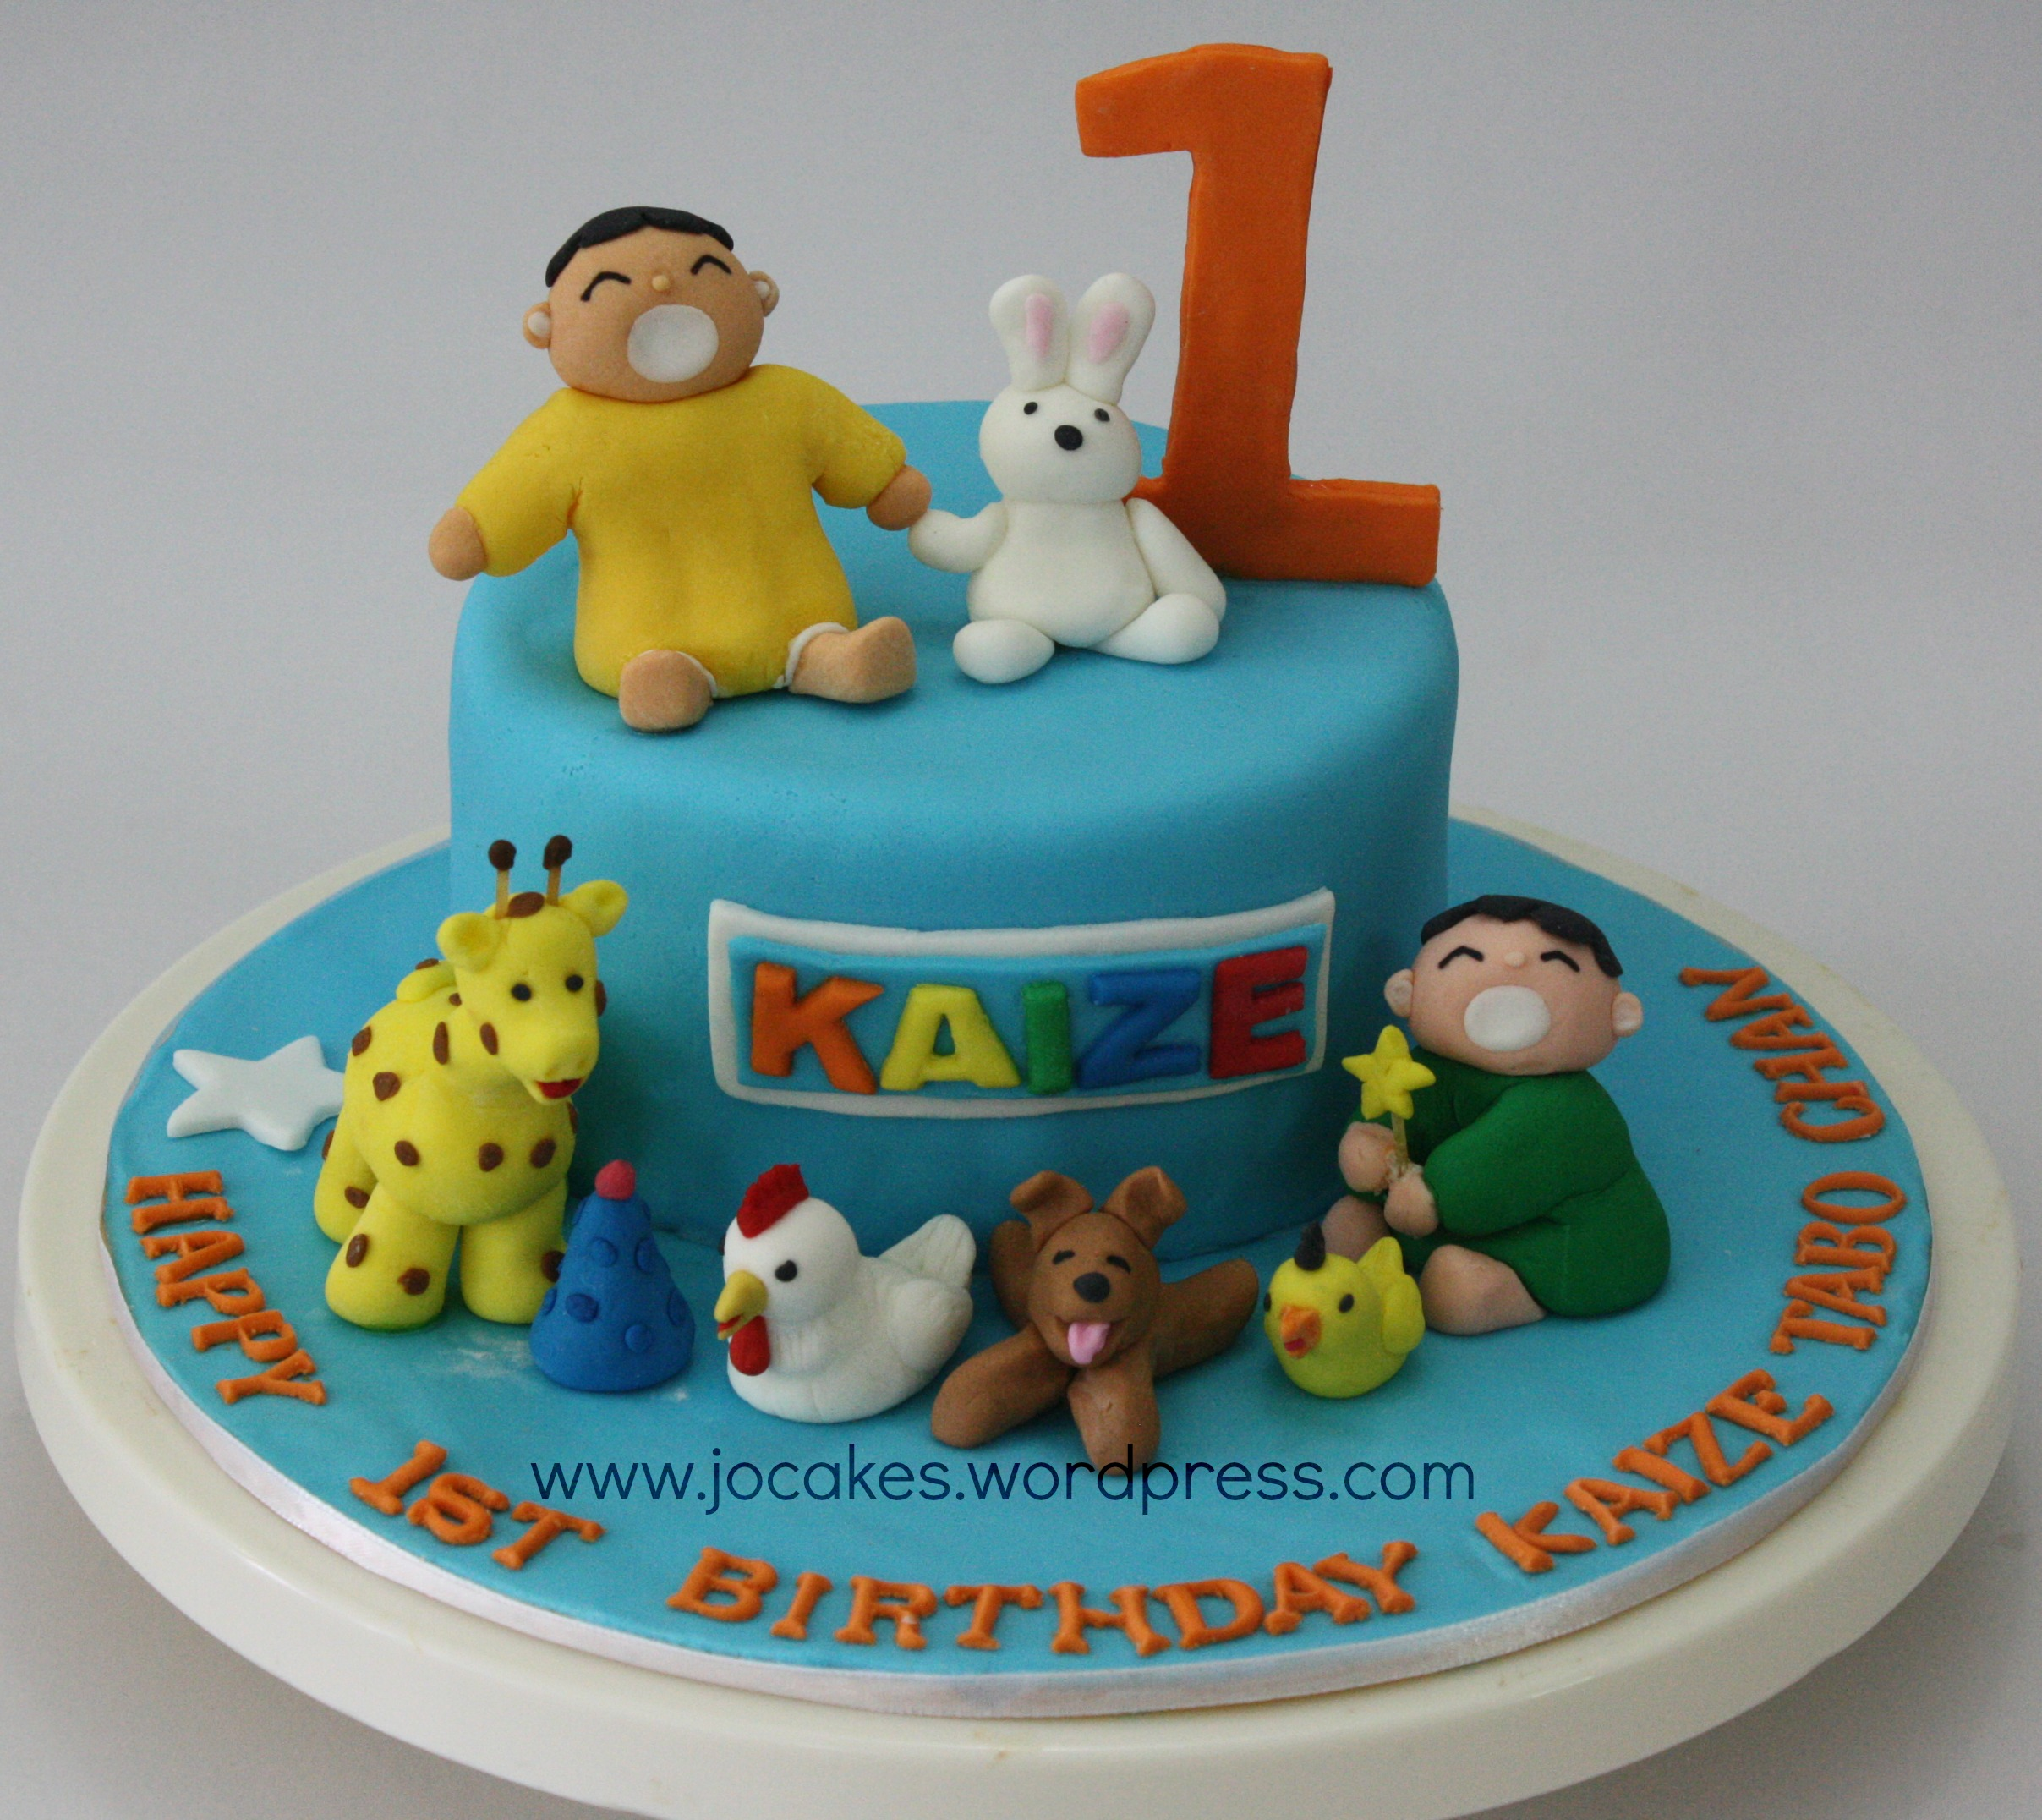 One Year Old Boy Birthday Cake Ideas